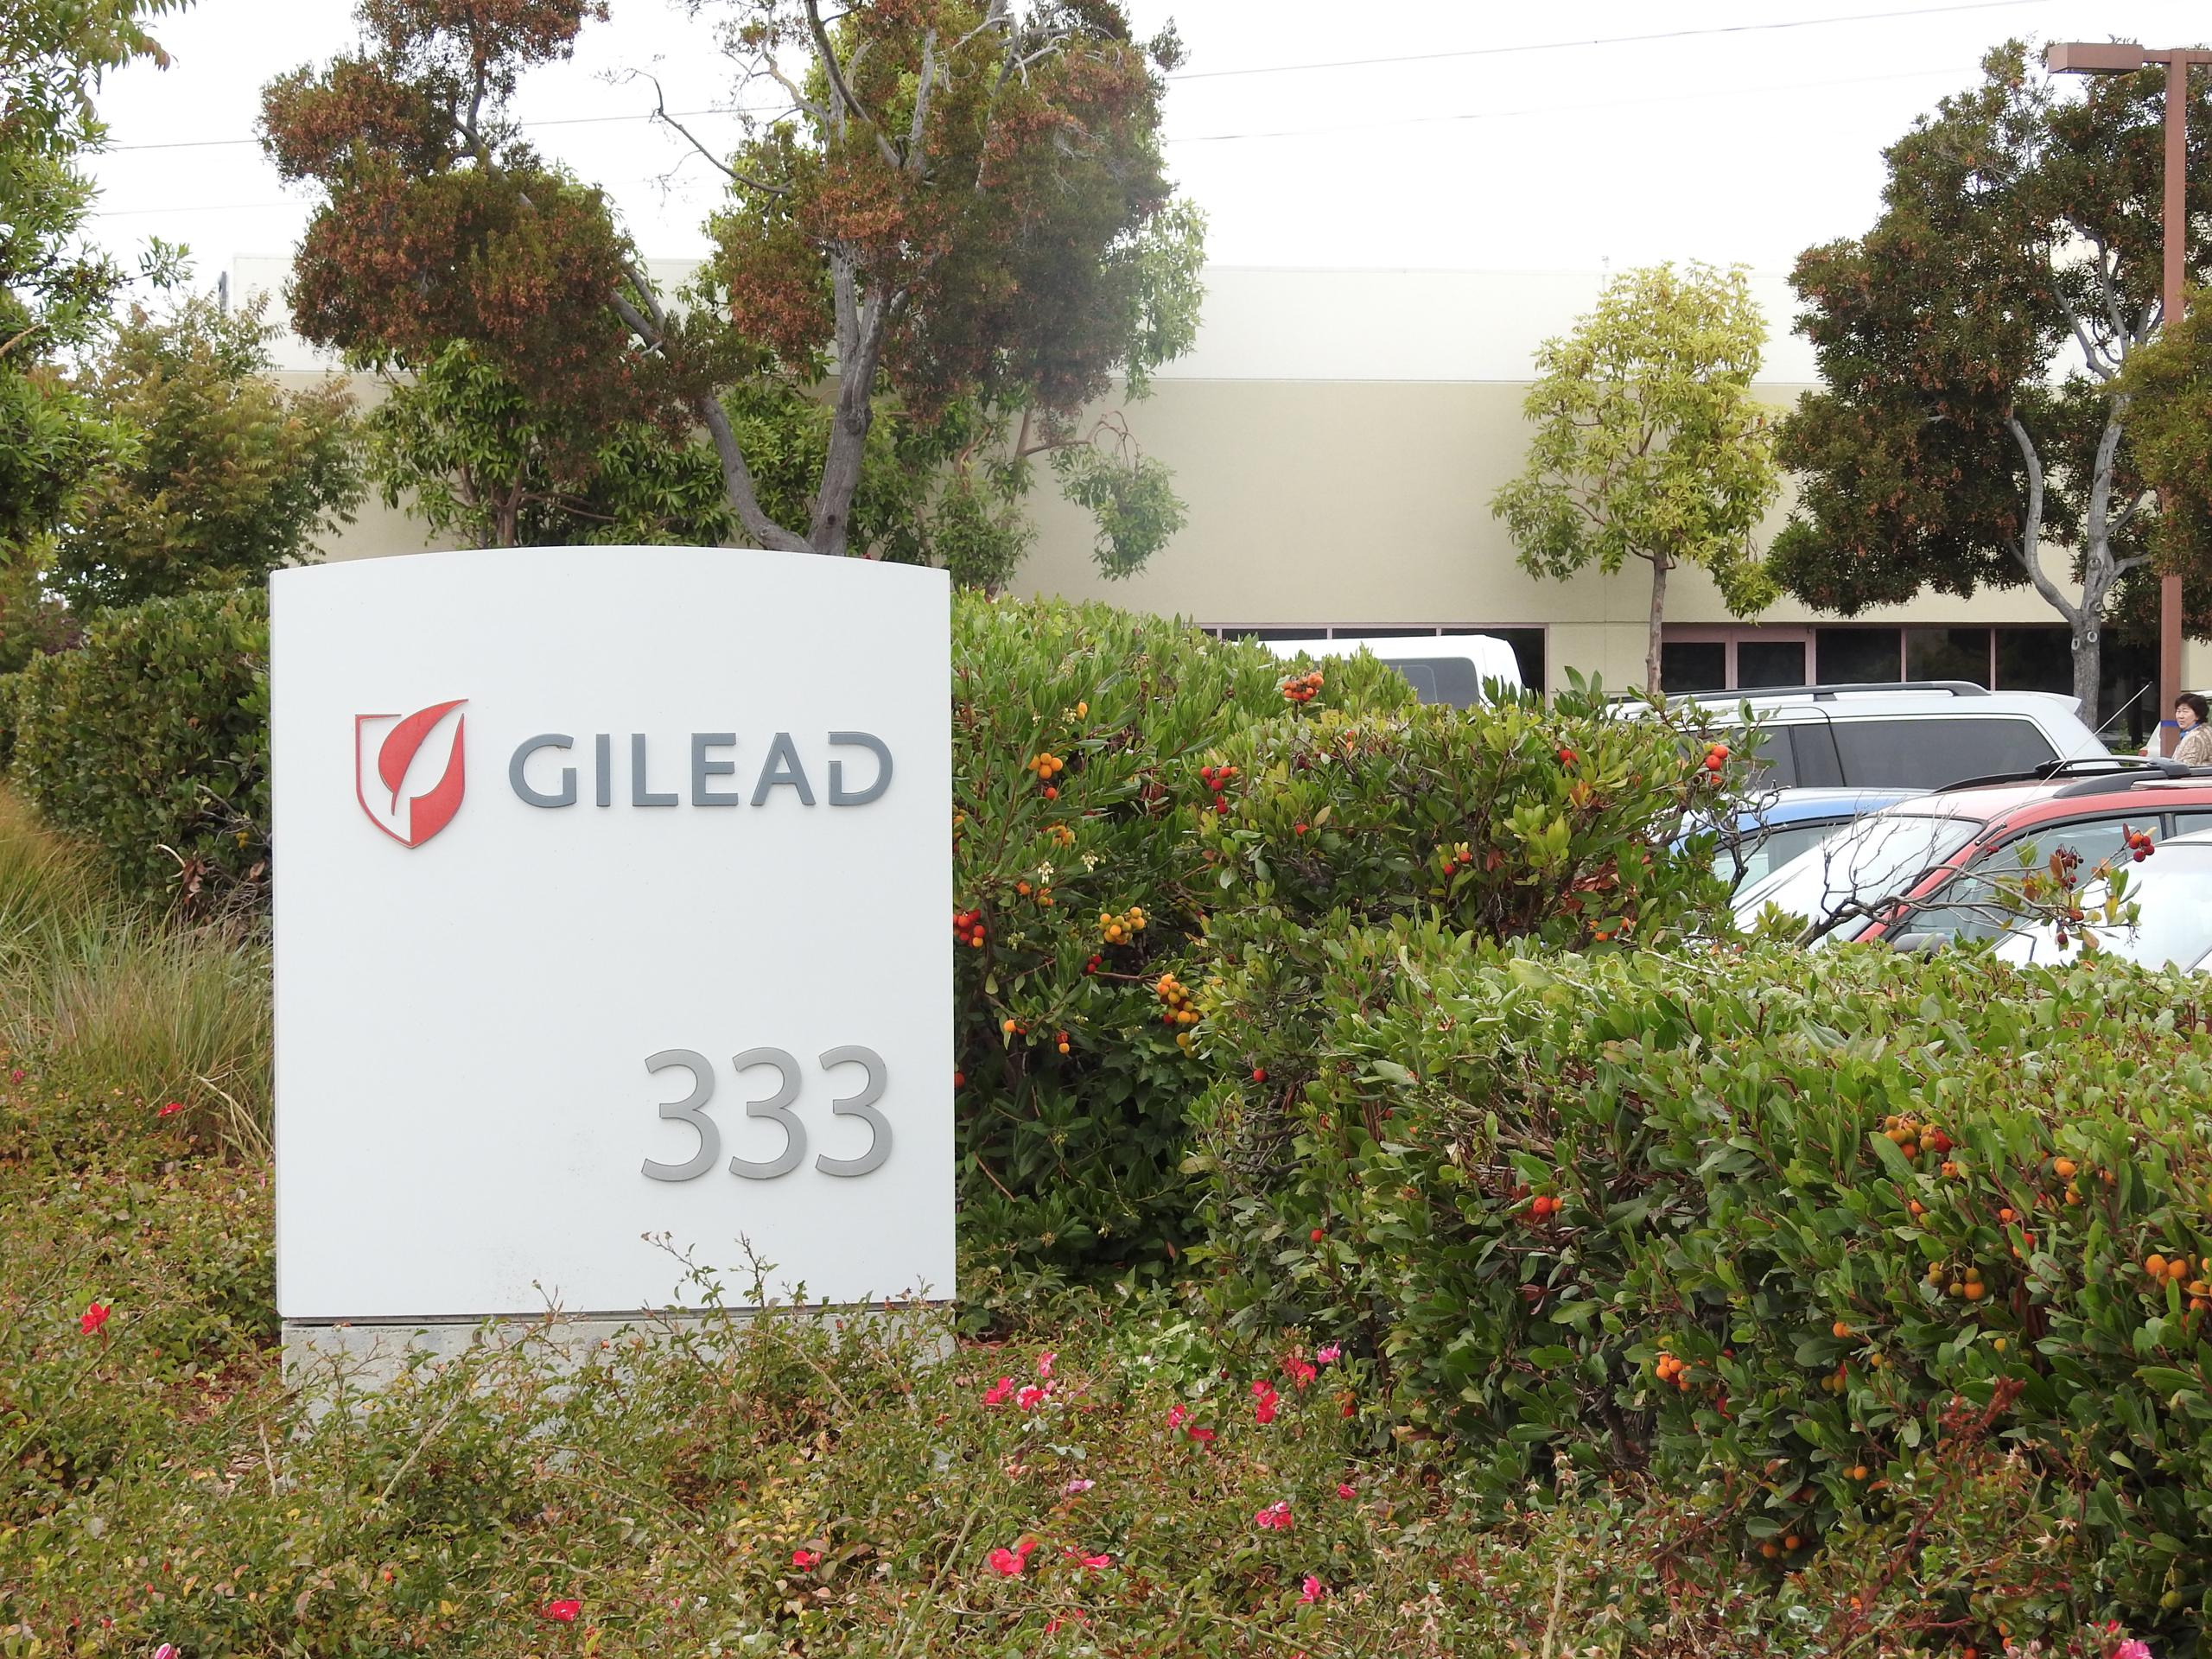 Entrance to Gilead Sciences' corporate headquarters in Foster City, California.